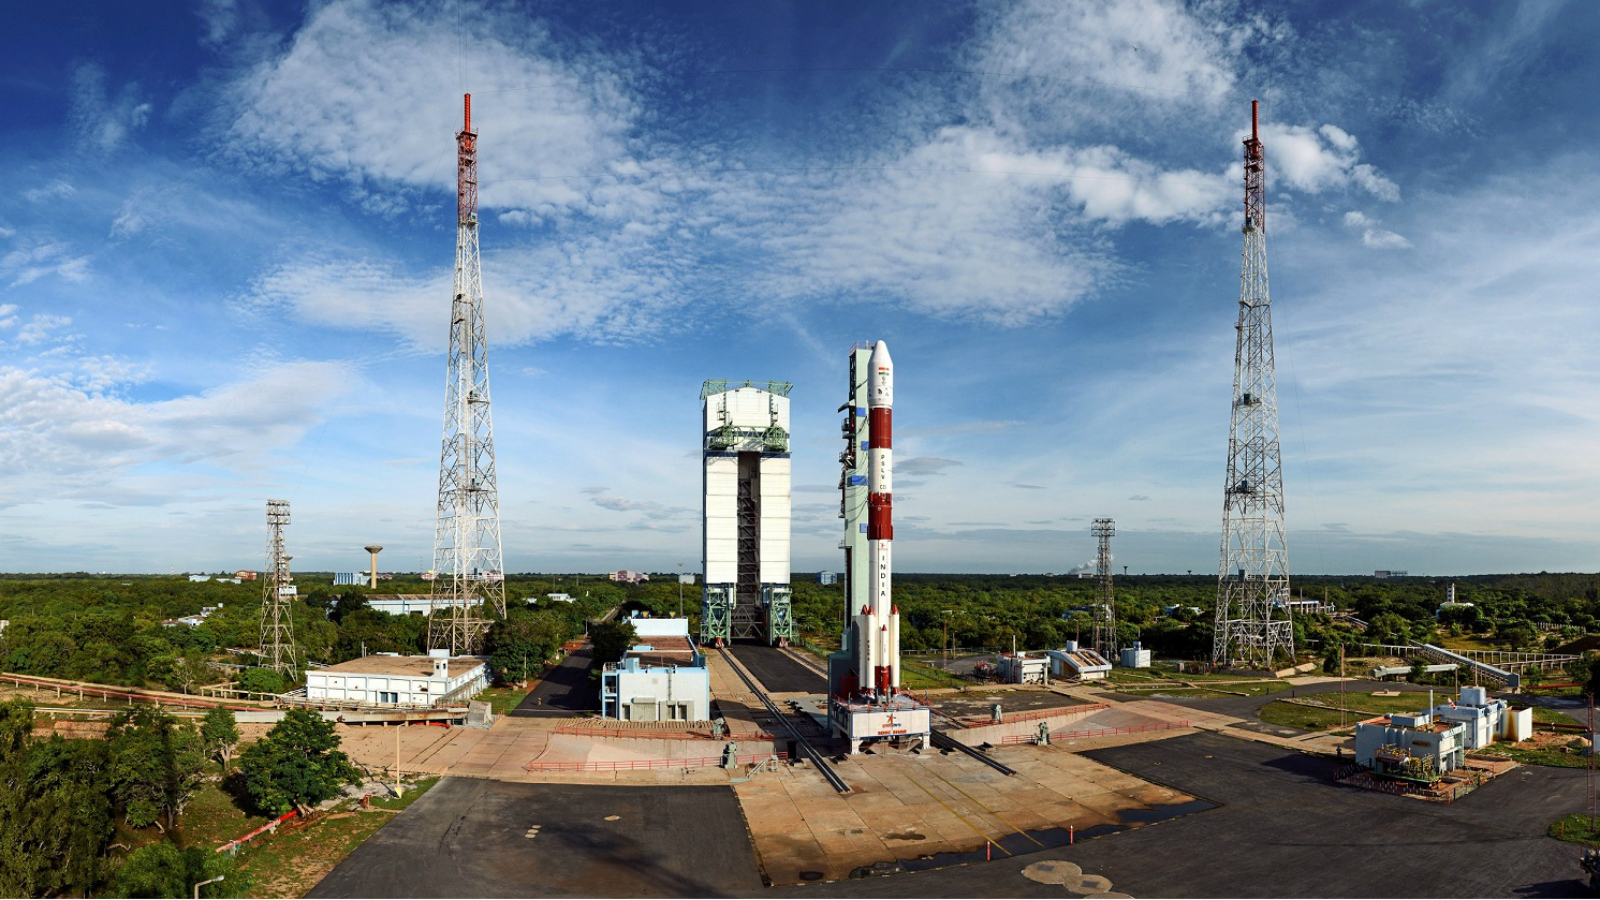 ISRO-Space-NASA-Satellite-PSLV-Rocket